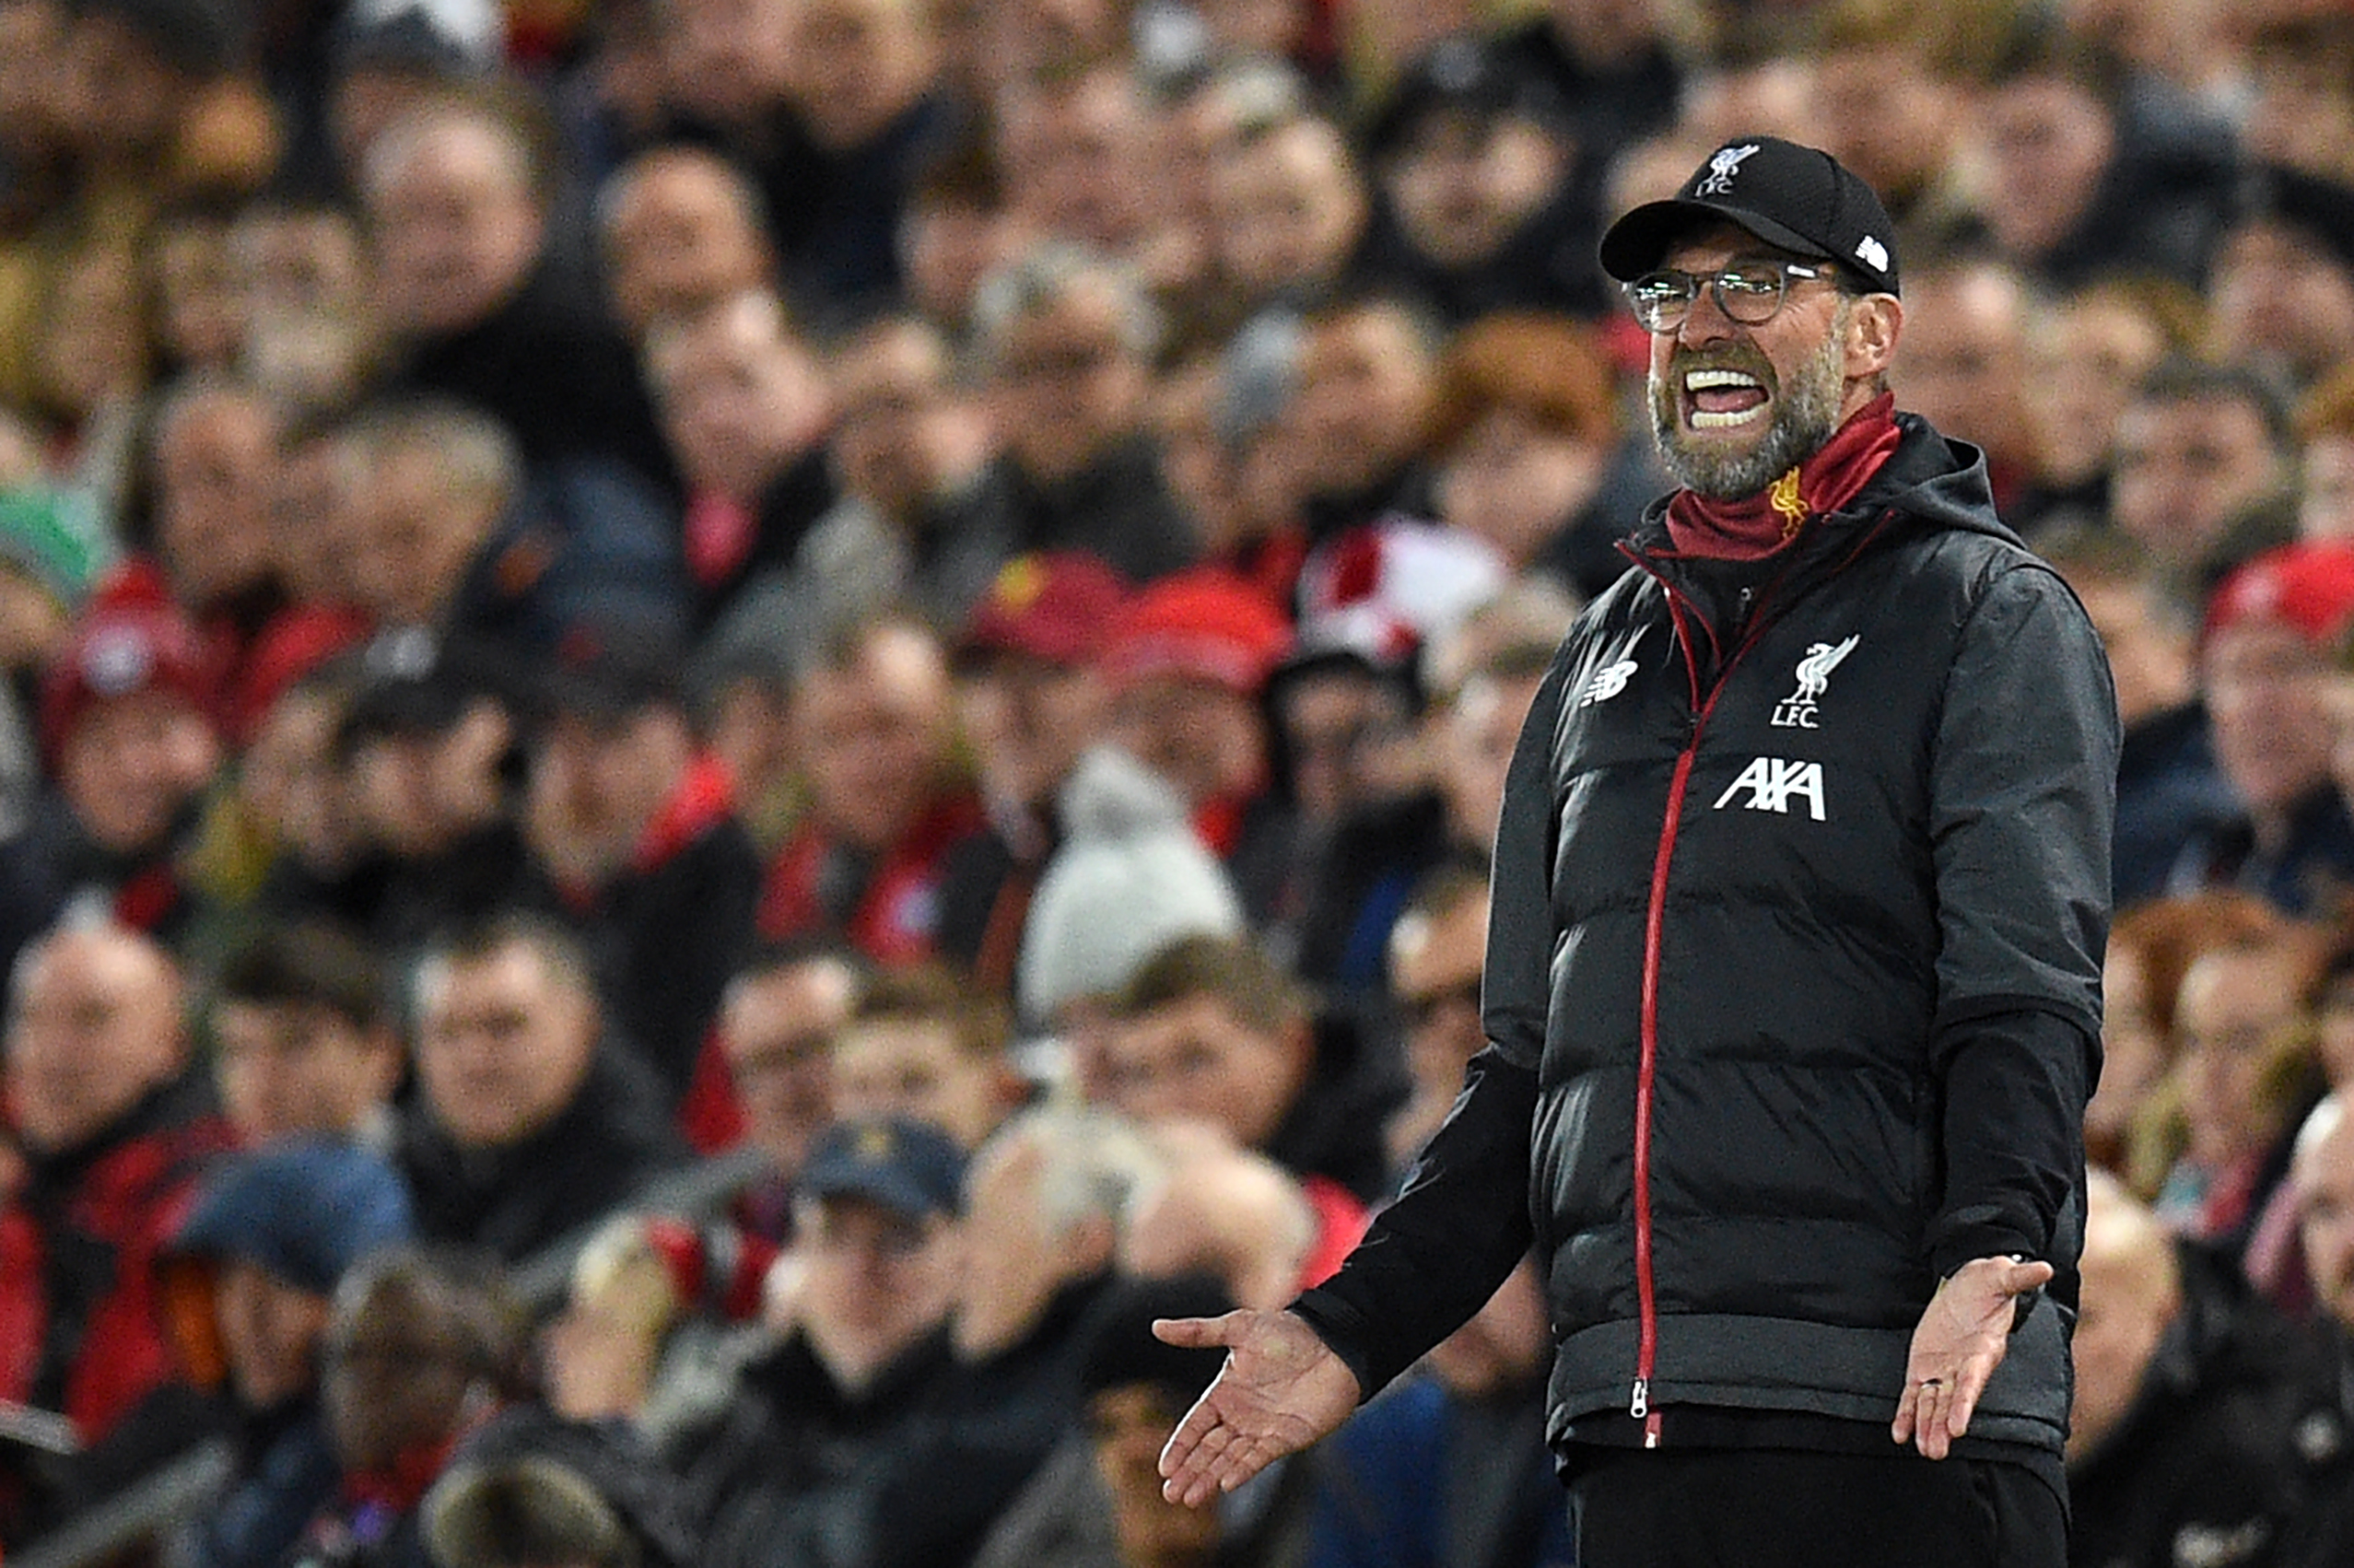 Jurgen Klopp cut a frustrated figure on the touchline